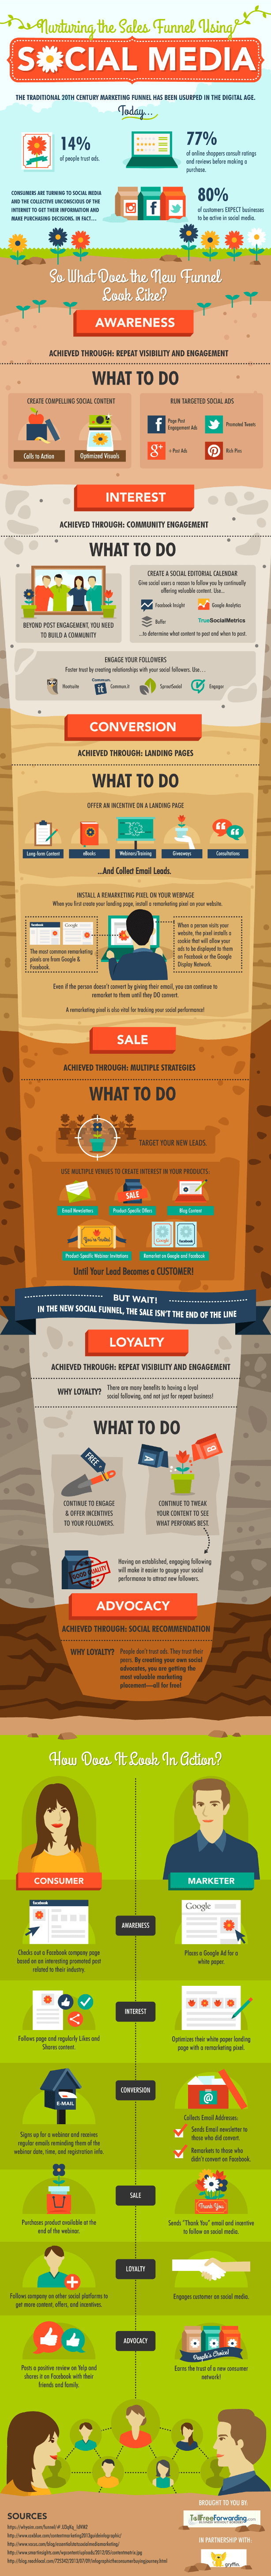 Nurturing The Sales Funnel Using Social Media (Infographic)